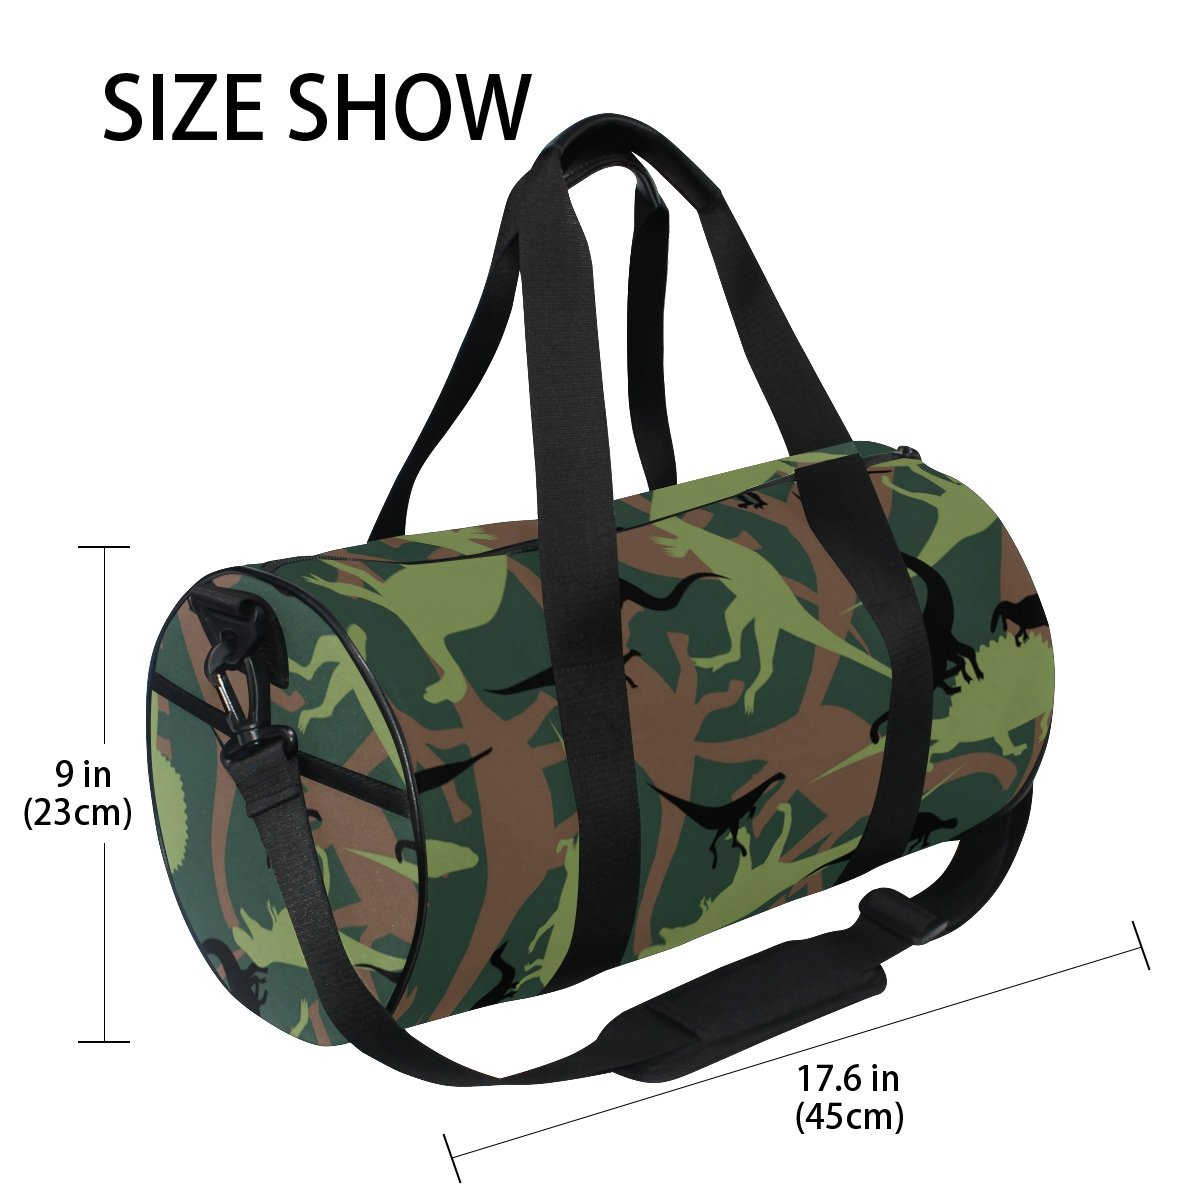 Naanle Dinosaur Camouflage Pattern Army Military Texture Camo Gym bag Sports Travel Duffle Bags for Men Women Boys Girls Kids by Naanle (Image #4)